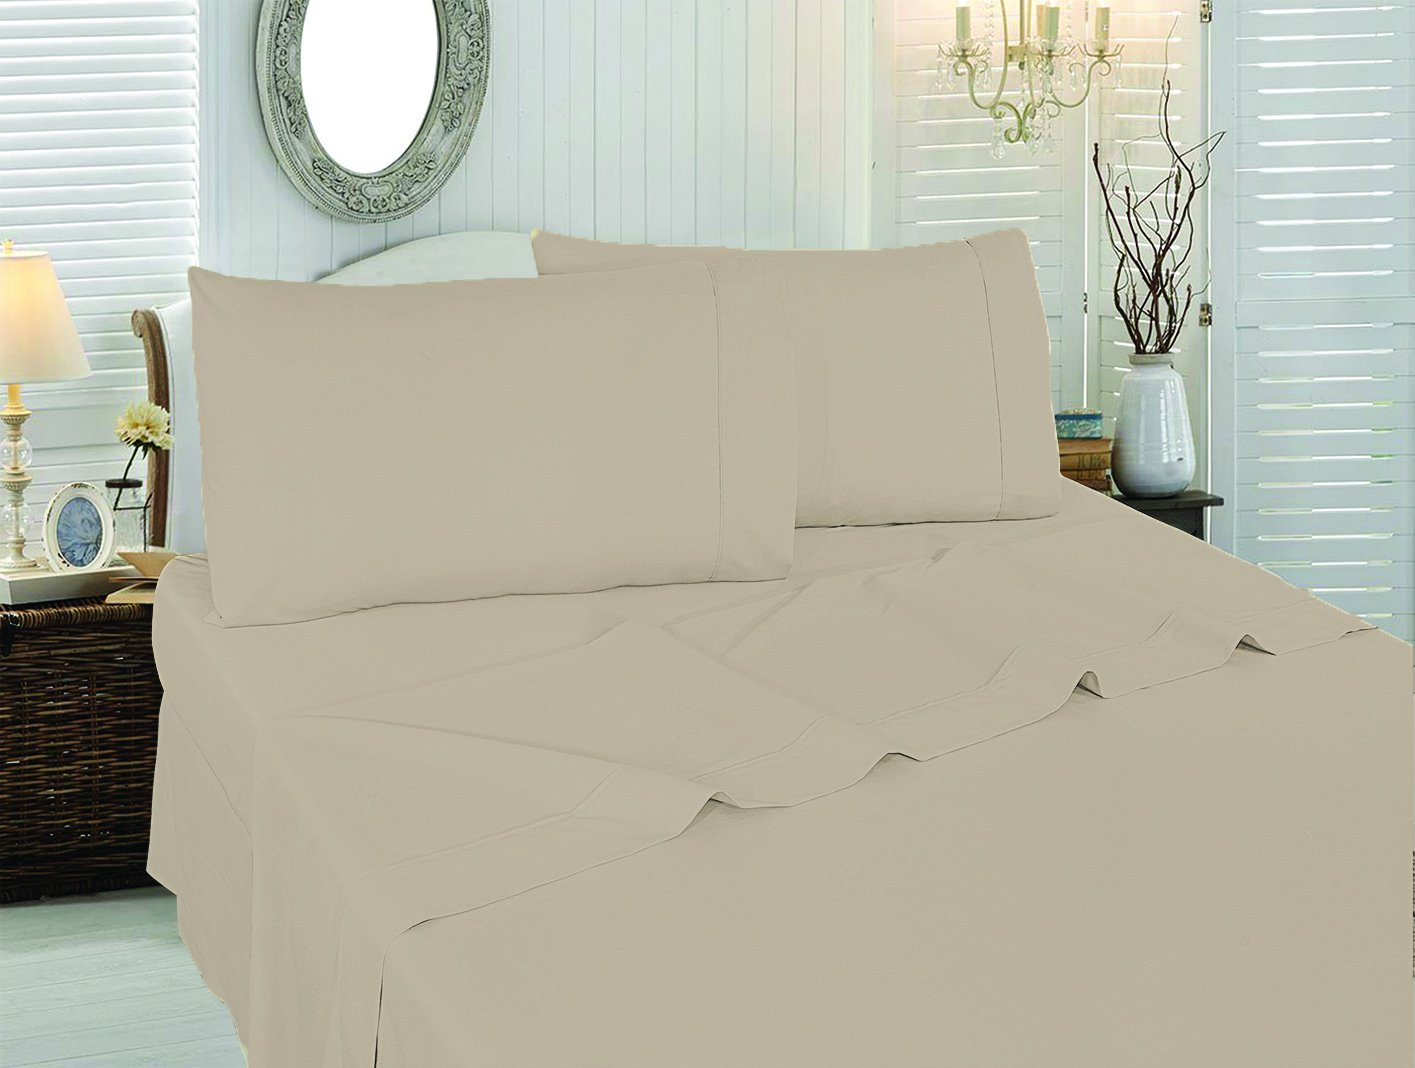 4 Piece Bed Sheet Set Queen, Beige